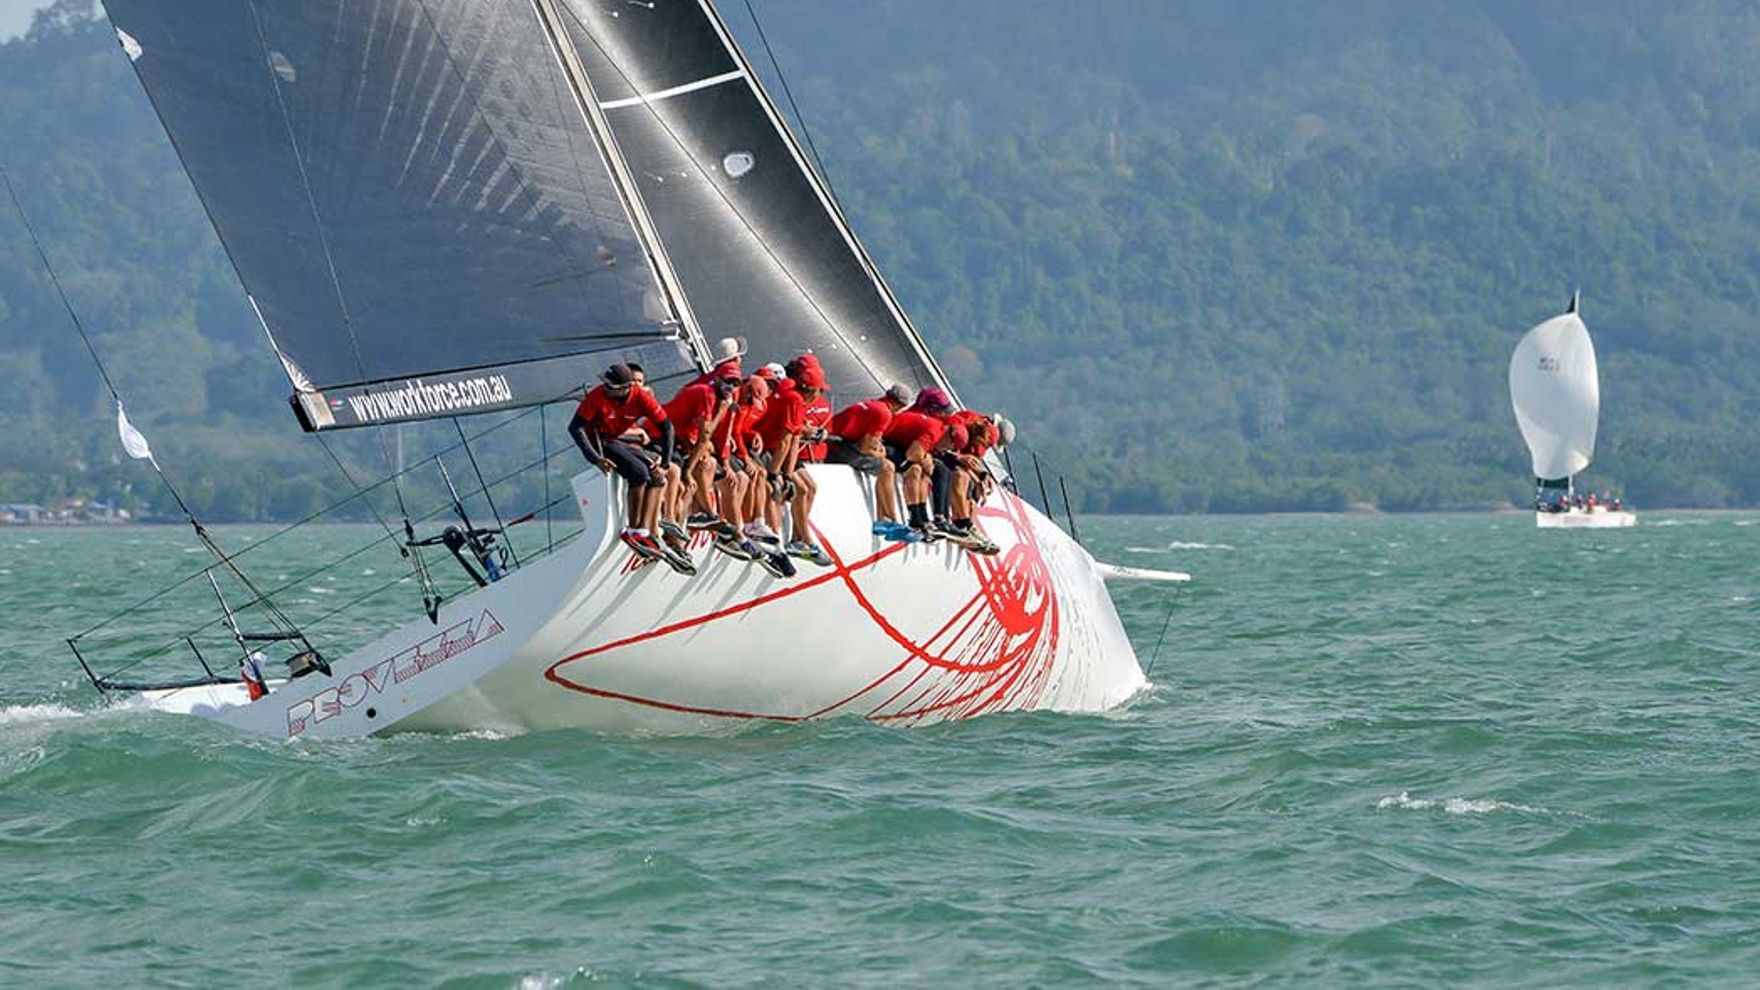 ROYAL LANGKAWI INTERNATIONAL REGATTA